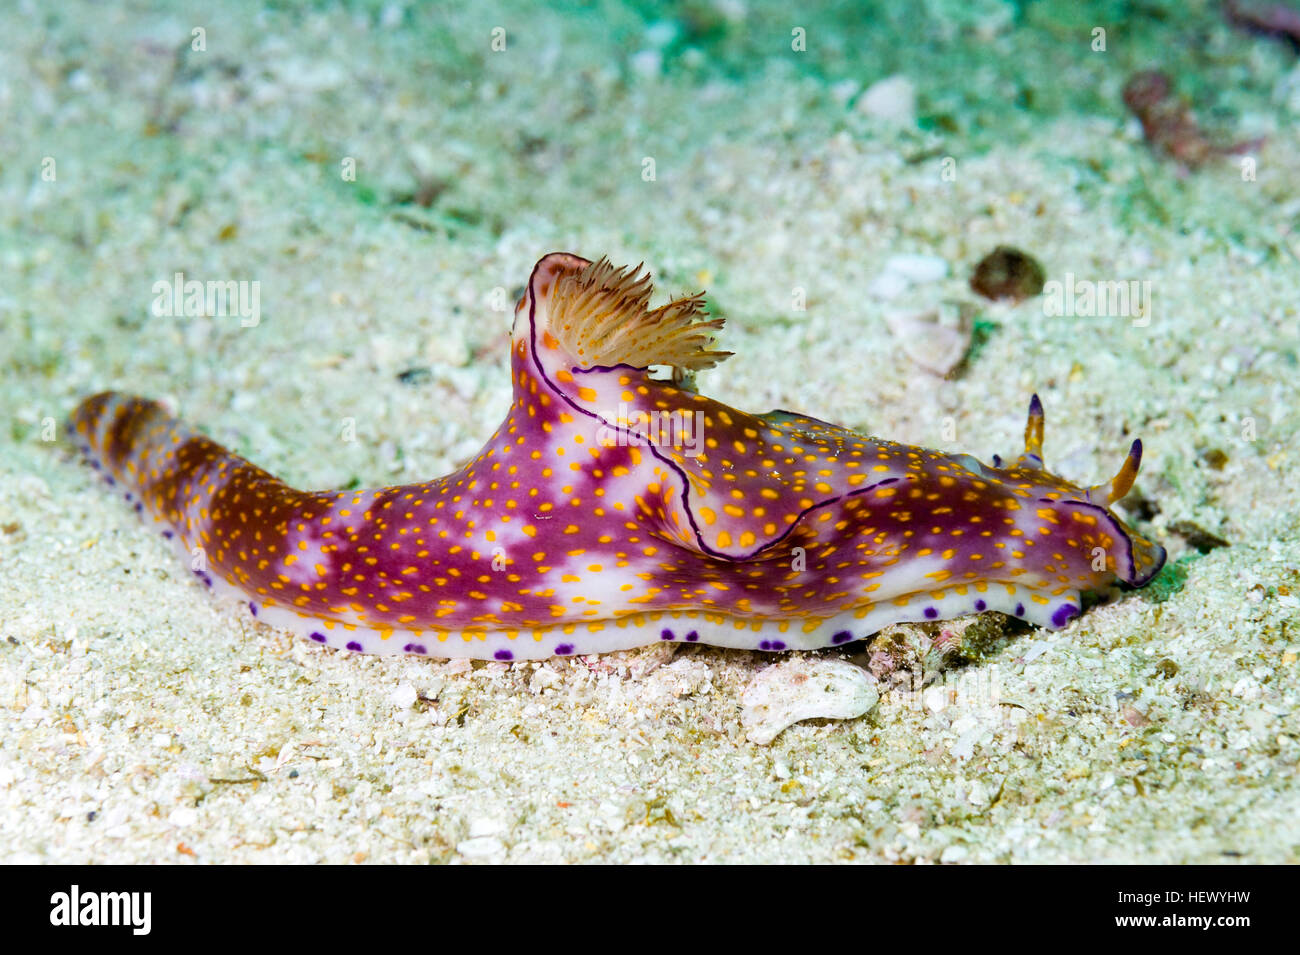 The feather like mantle and bright colors of a Ceratosoma trilobatum nudibranch. - Stock Image